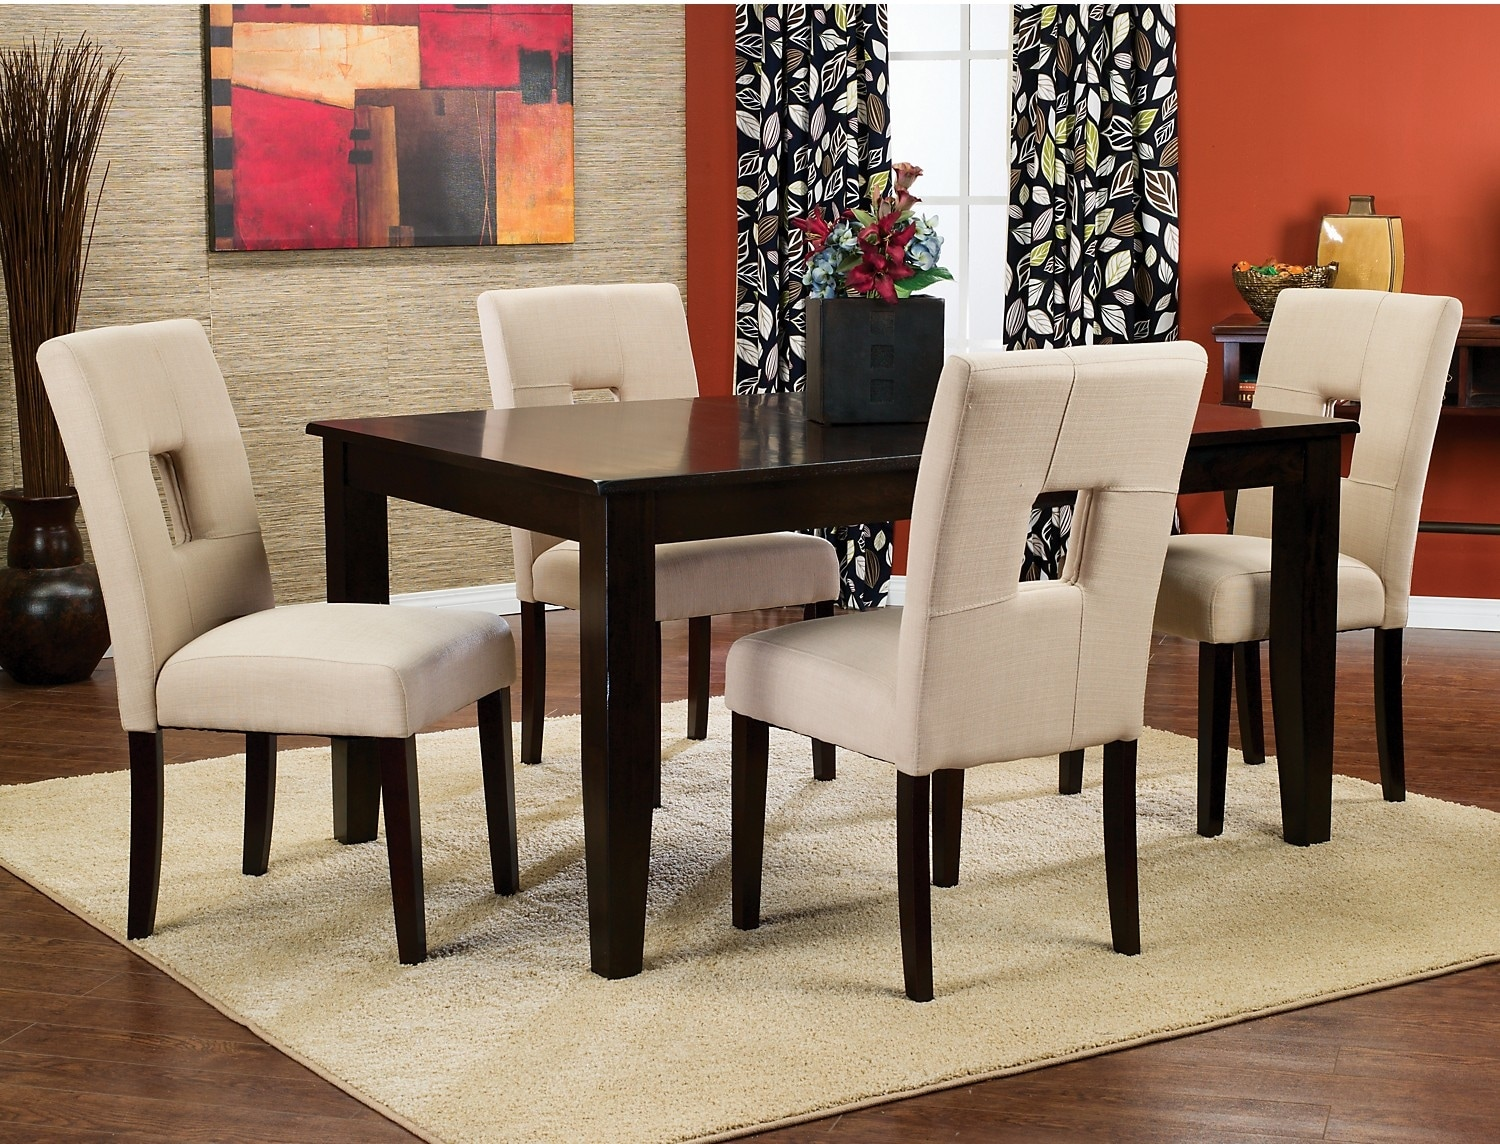 Dining Room Furniture - Dakota 5-Piece Dining Package with Beige Chairs